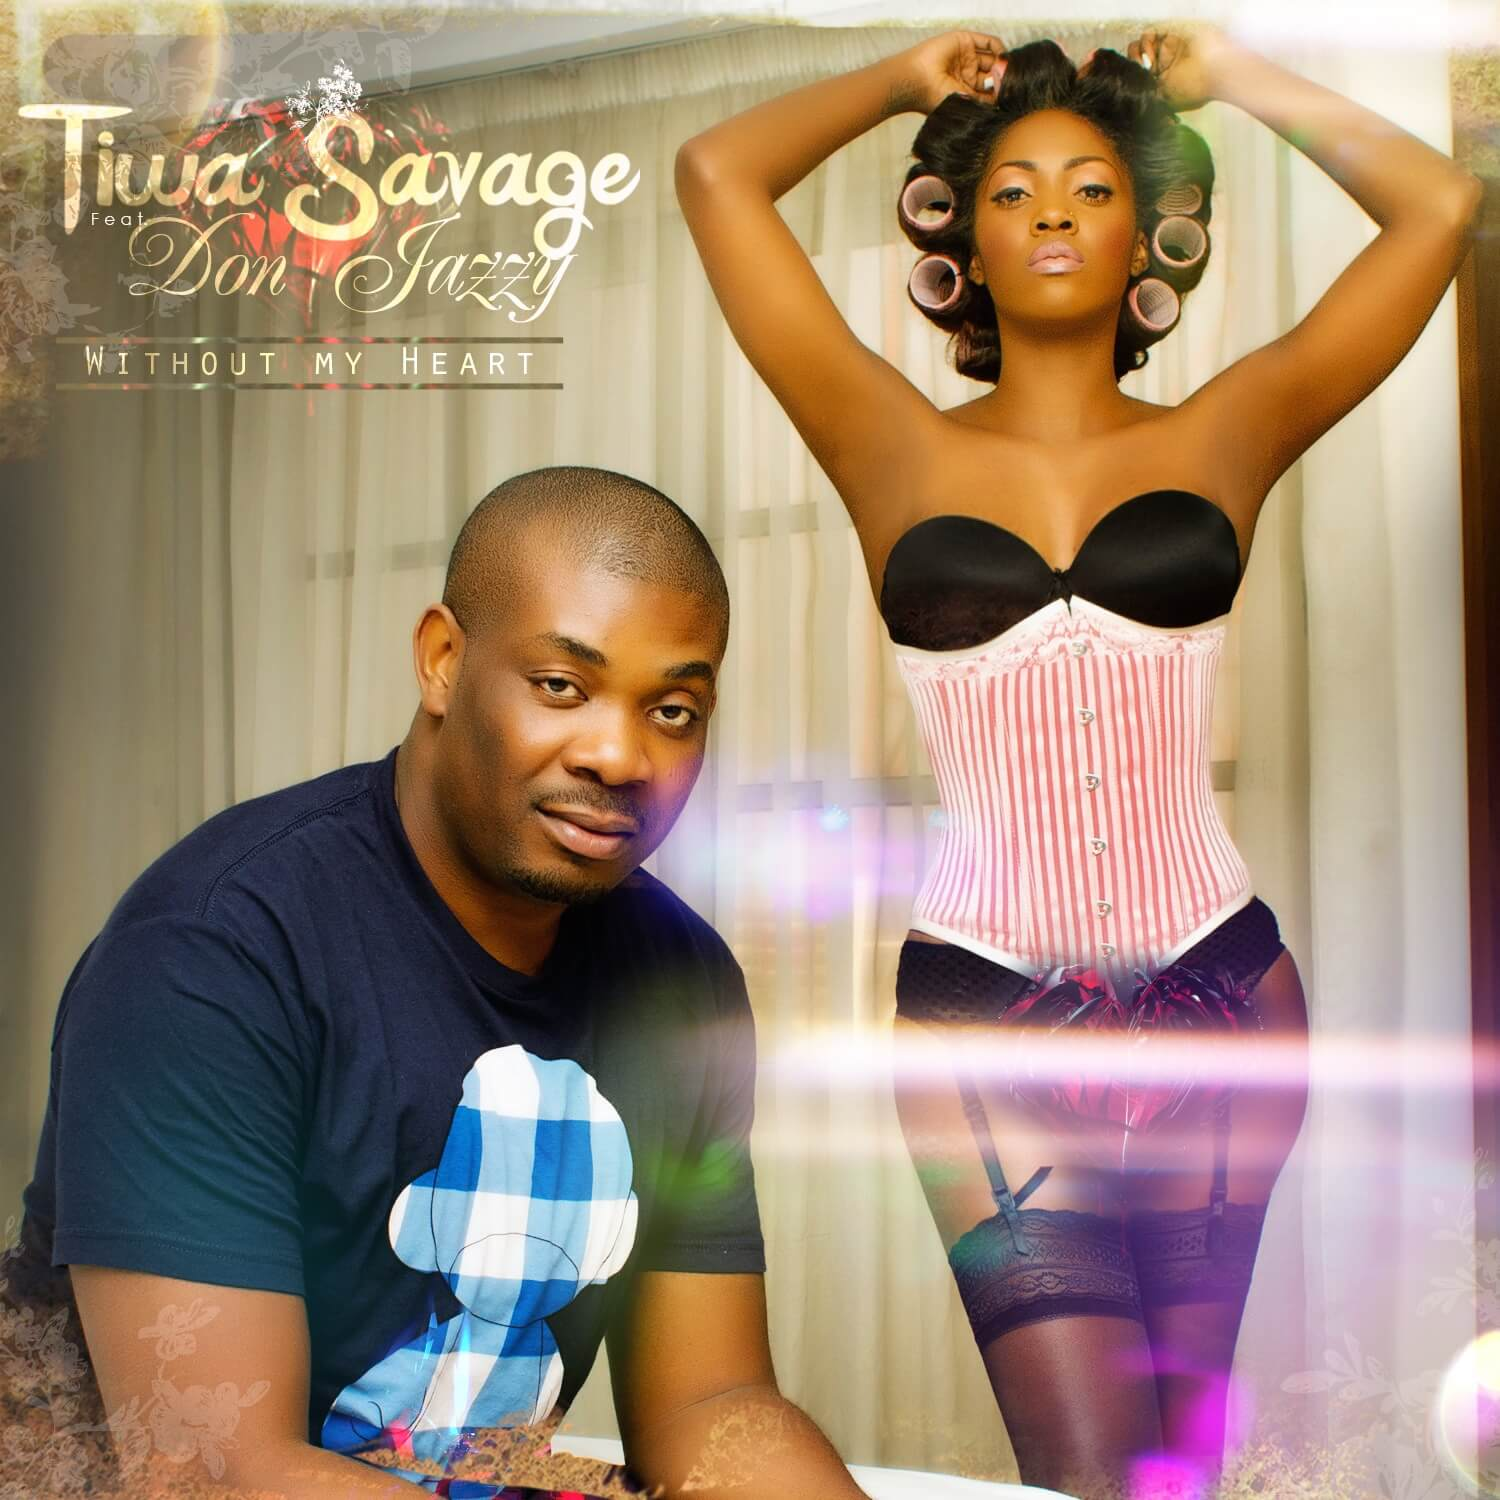 JEGIQ ThrowBack Thursday: Tiwa Savage (ft Don Jazzy) – Without My Heart